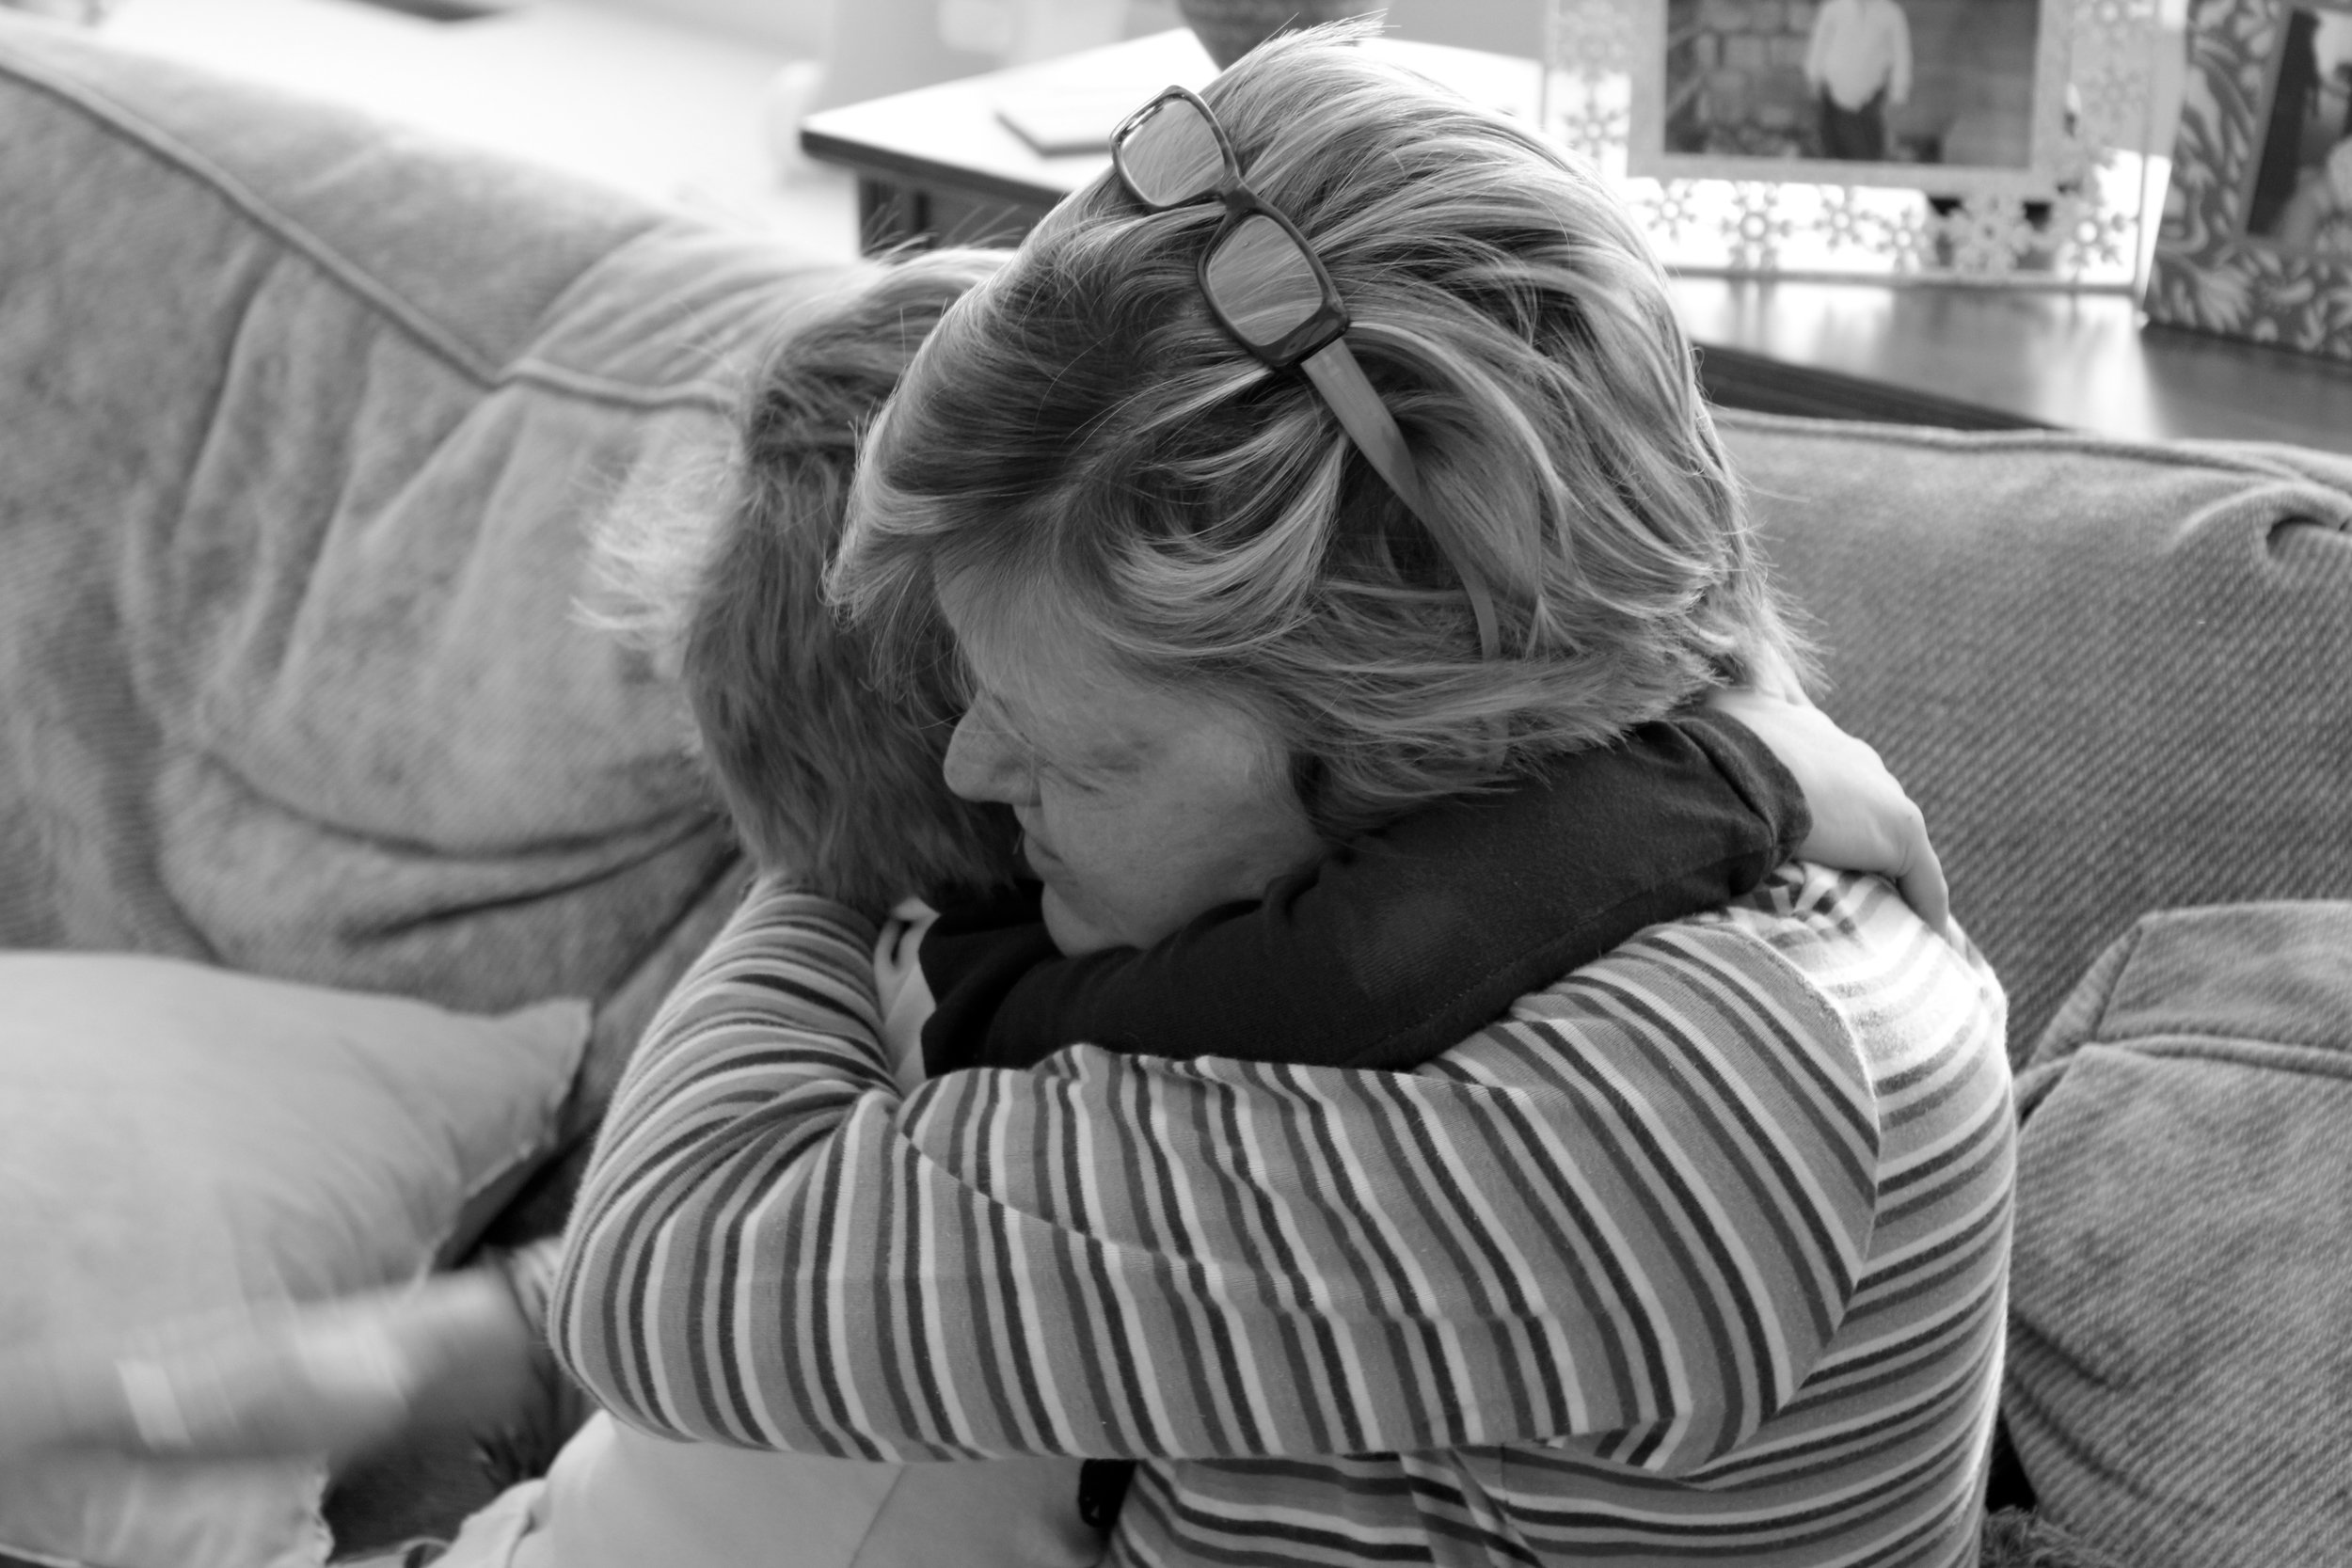 Home from the hospital, Barb Brown hugs her grandchild.